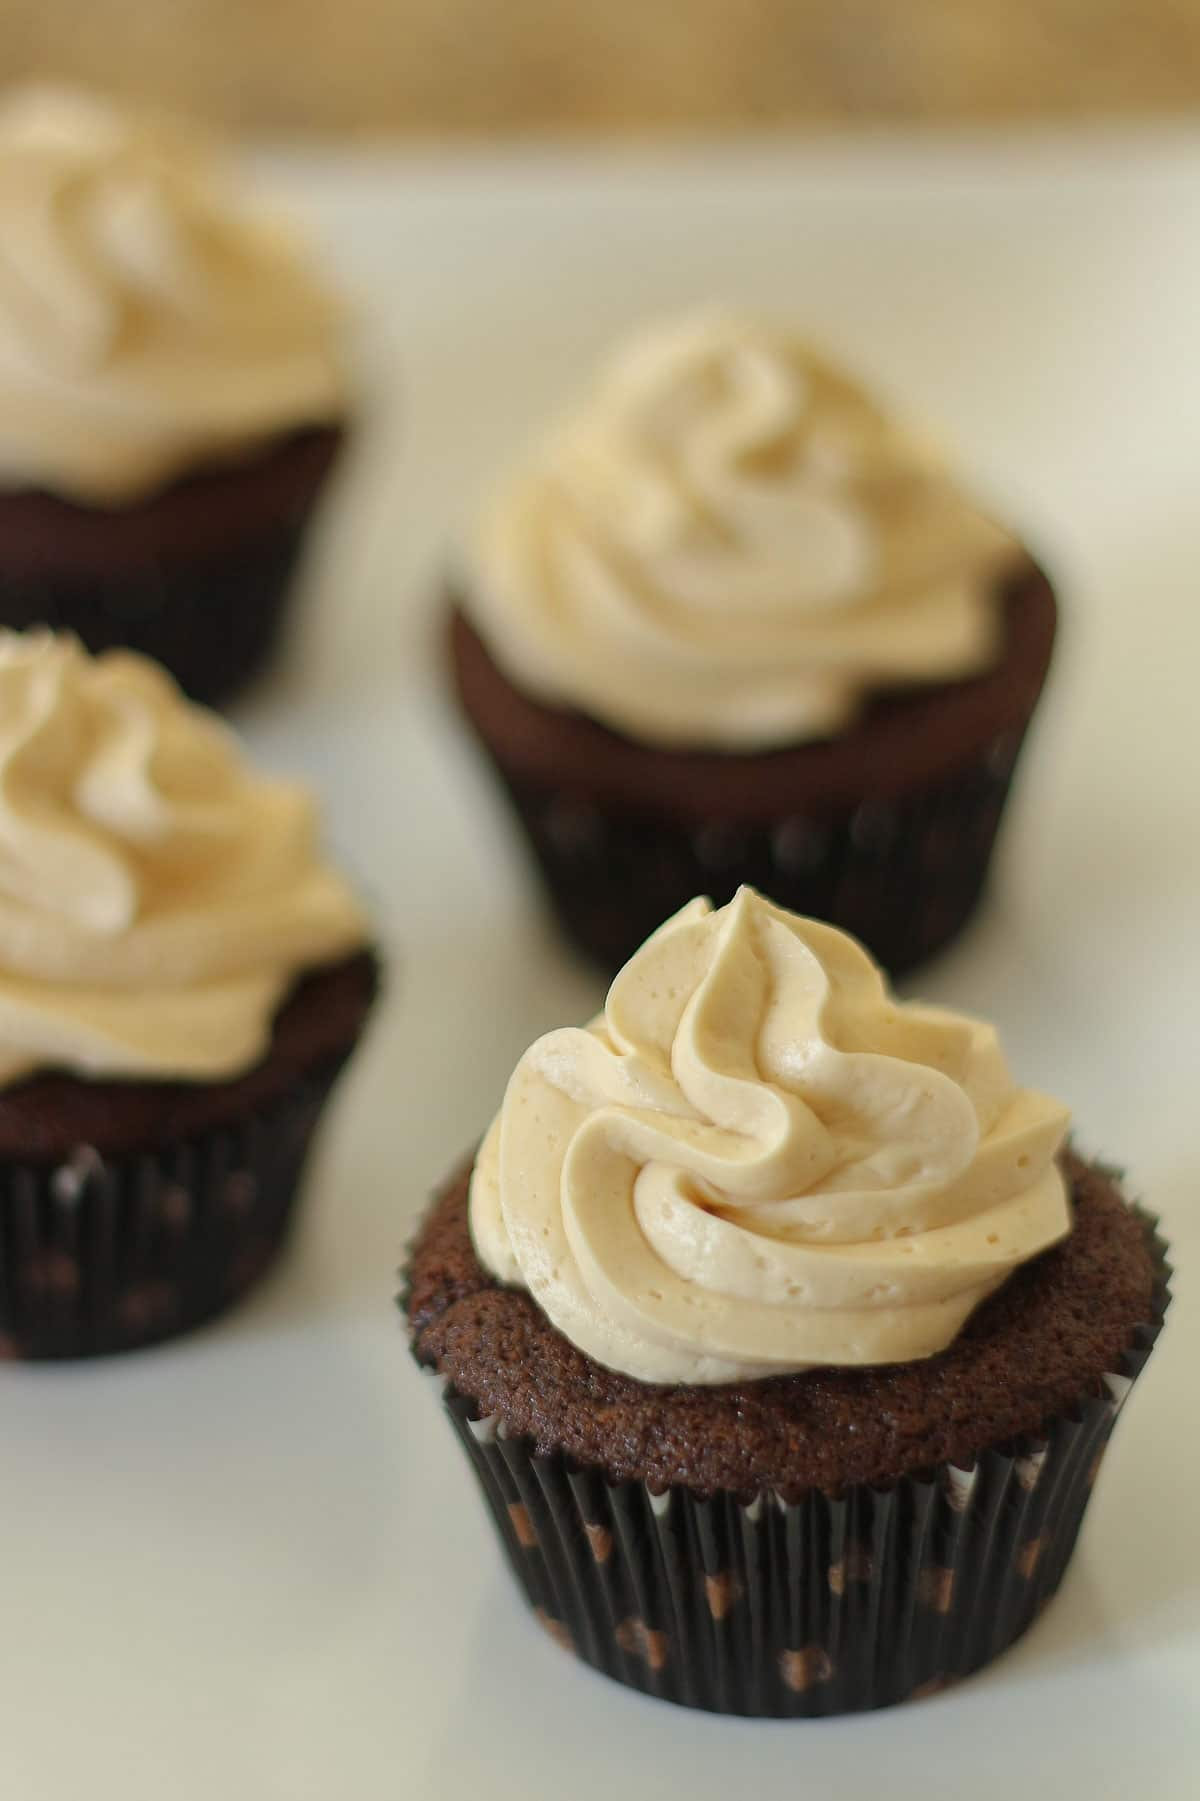 Closeup of frosted chocolate cupcakes with polka dot liners on a white plate.